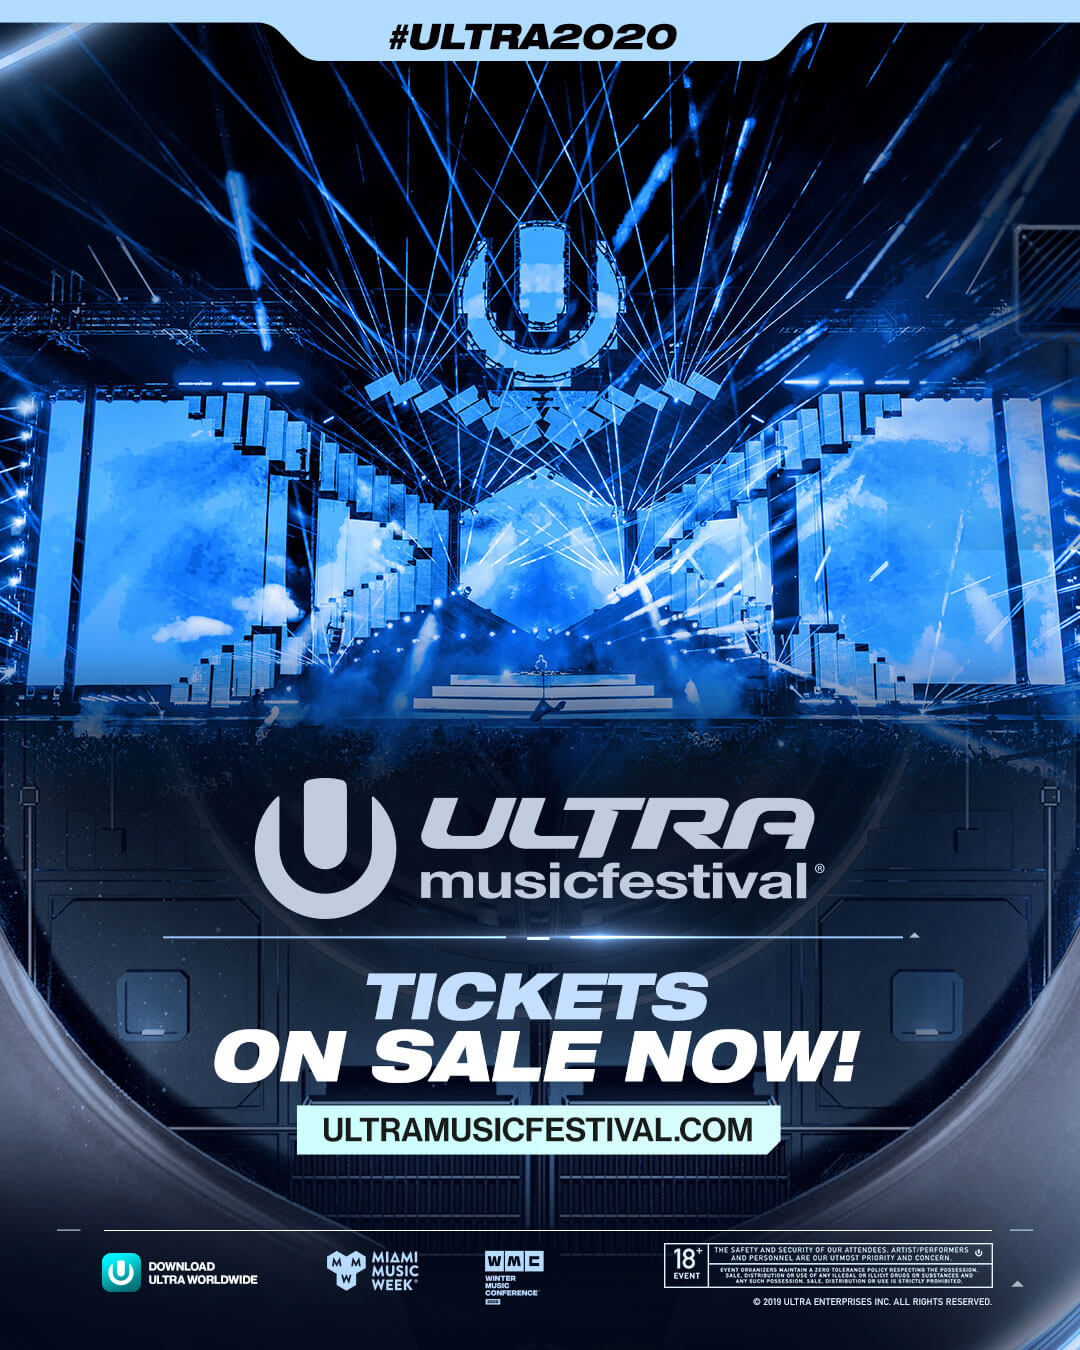 Ultra Festival Miami 2020.Ultra Music Festival 2020 Tickets On Sale Now Ultra Music